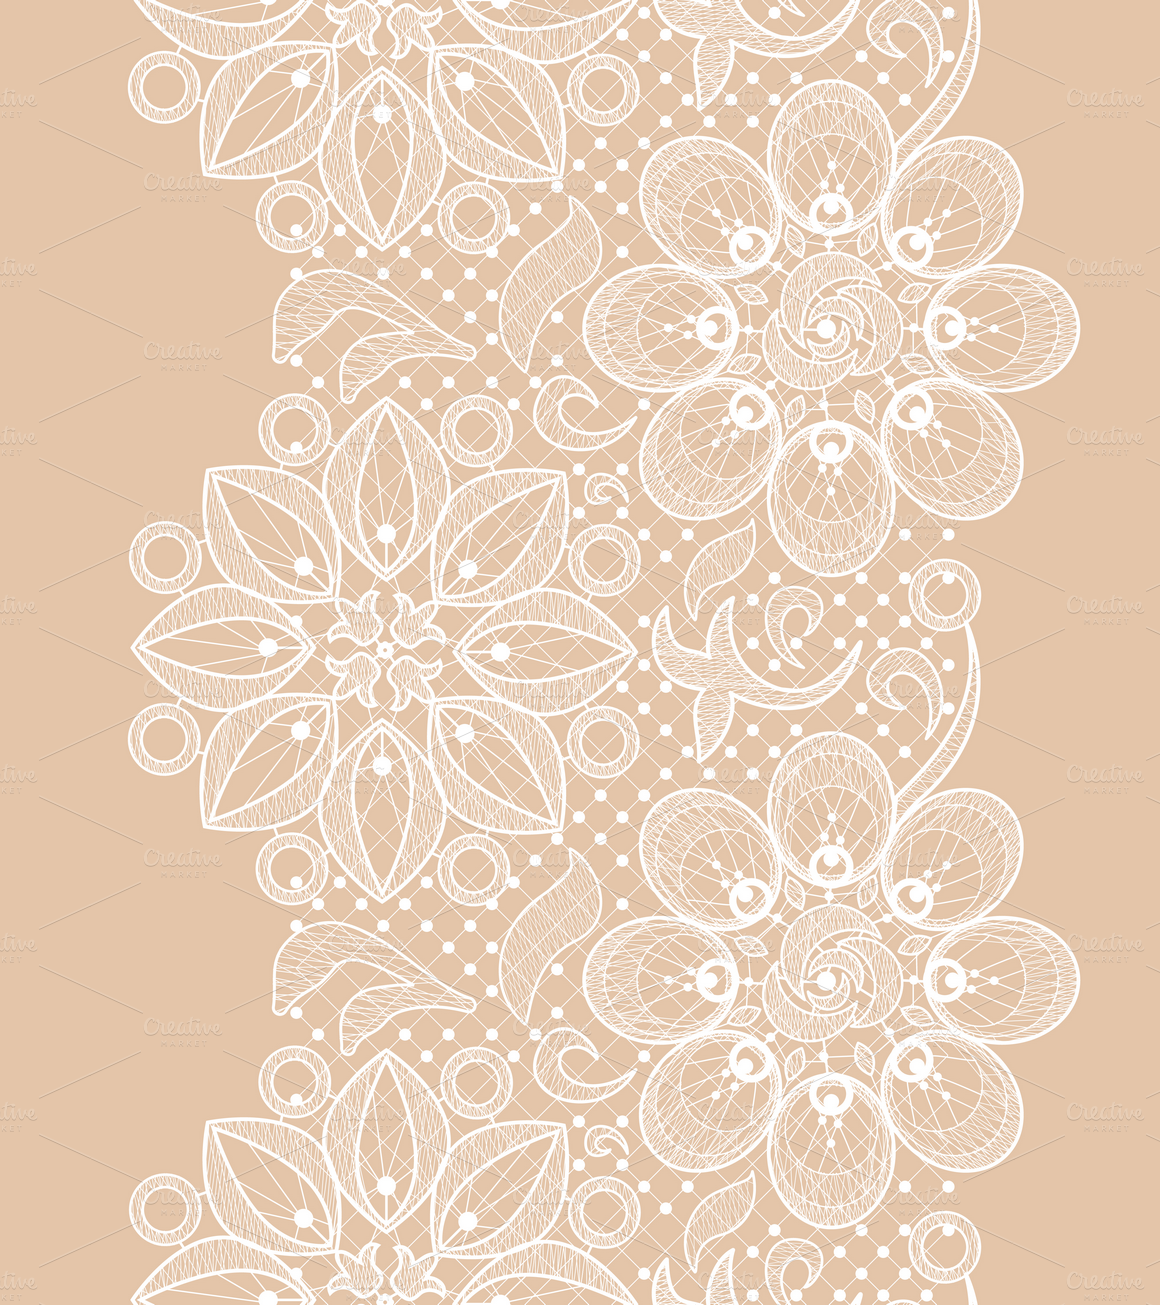 Seamless lace patterns by Macrovector on Creative Market.